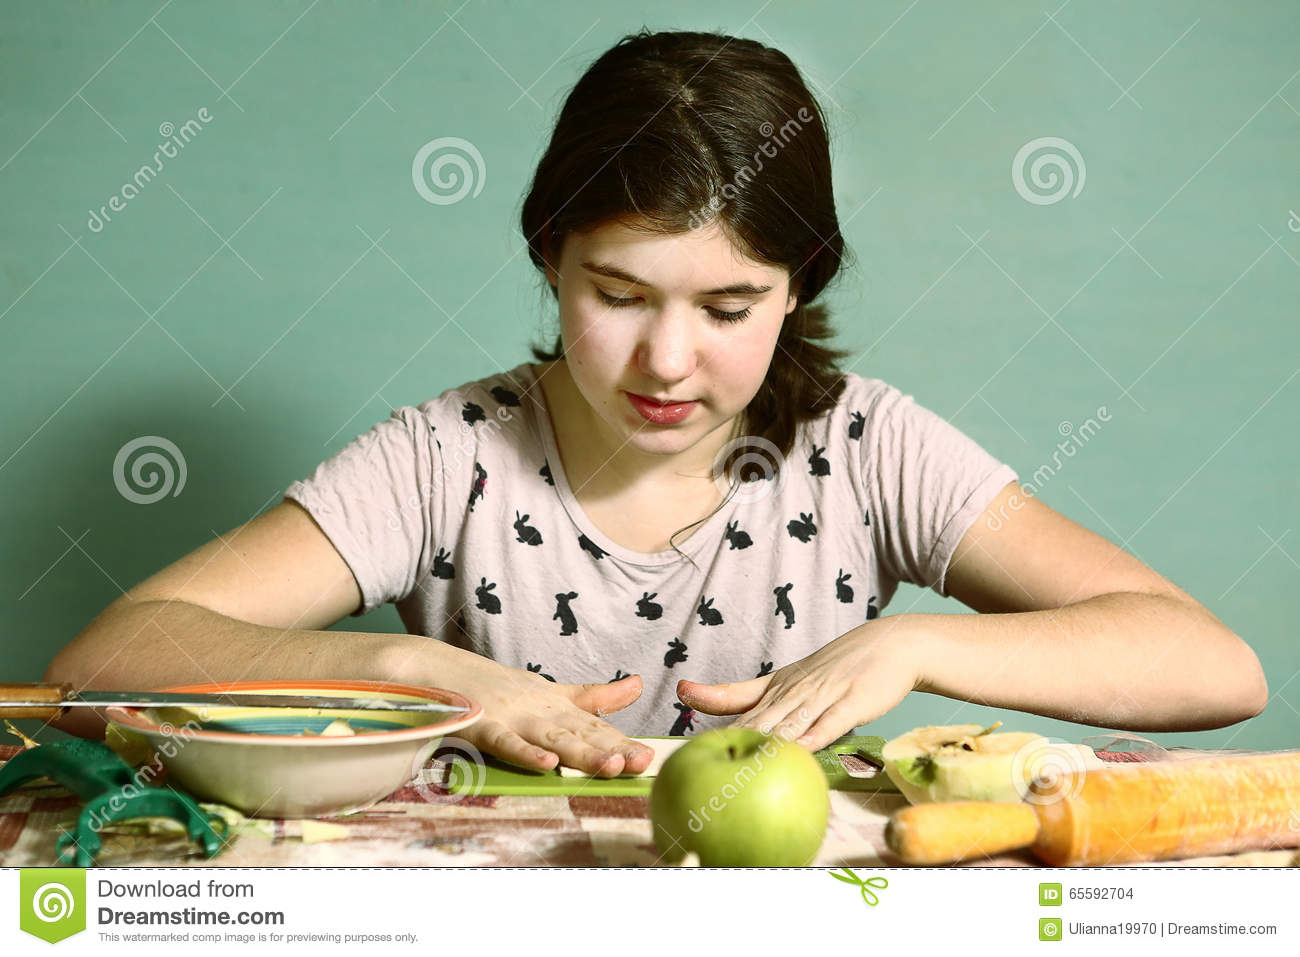 Teen Pretty Girl With Long Dark Hairs Prepare Pies With Cut Apples